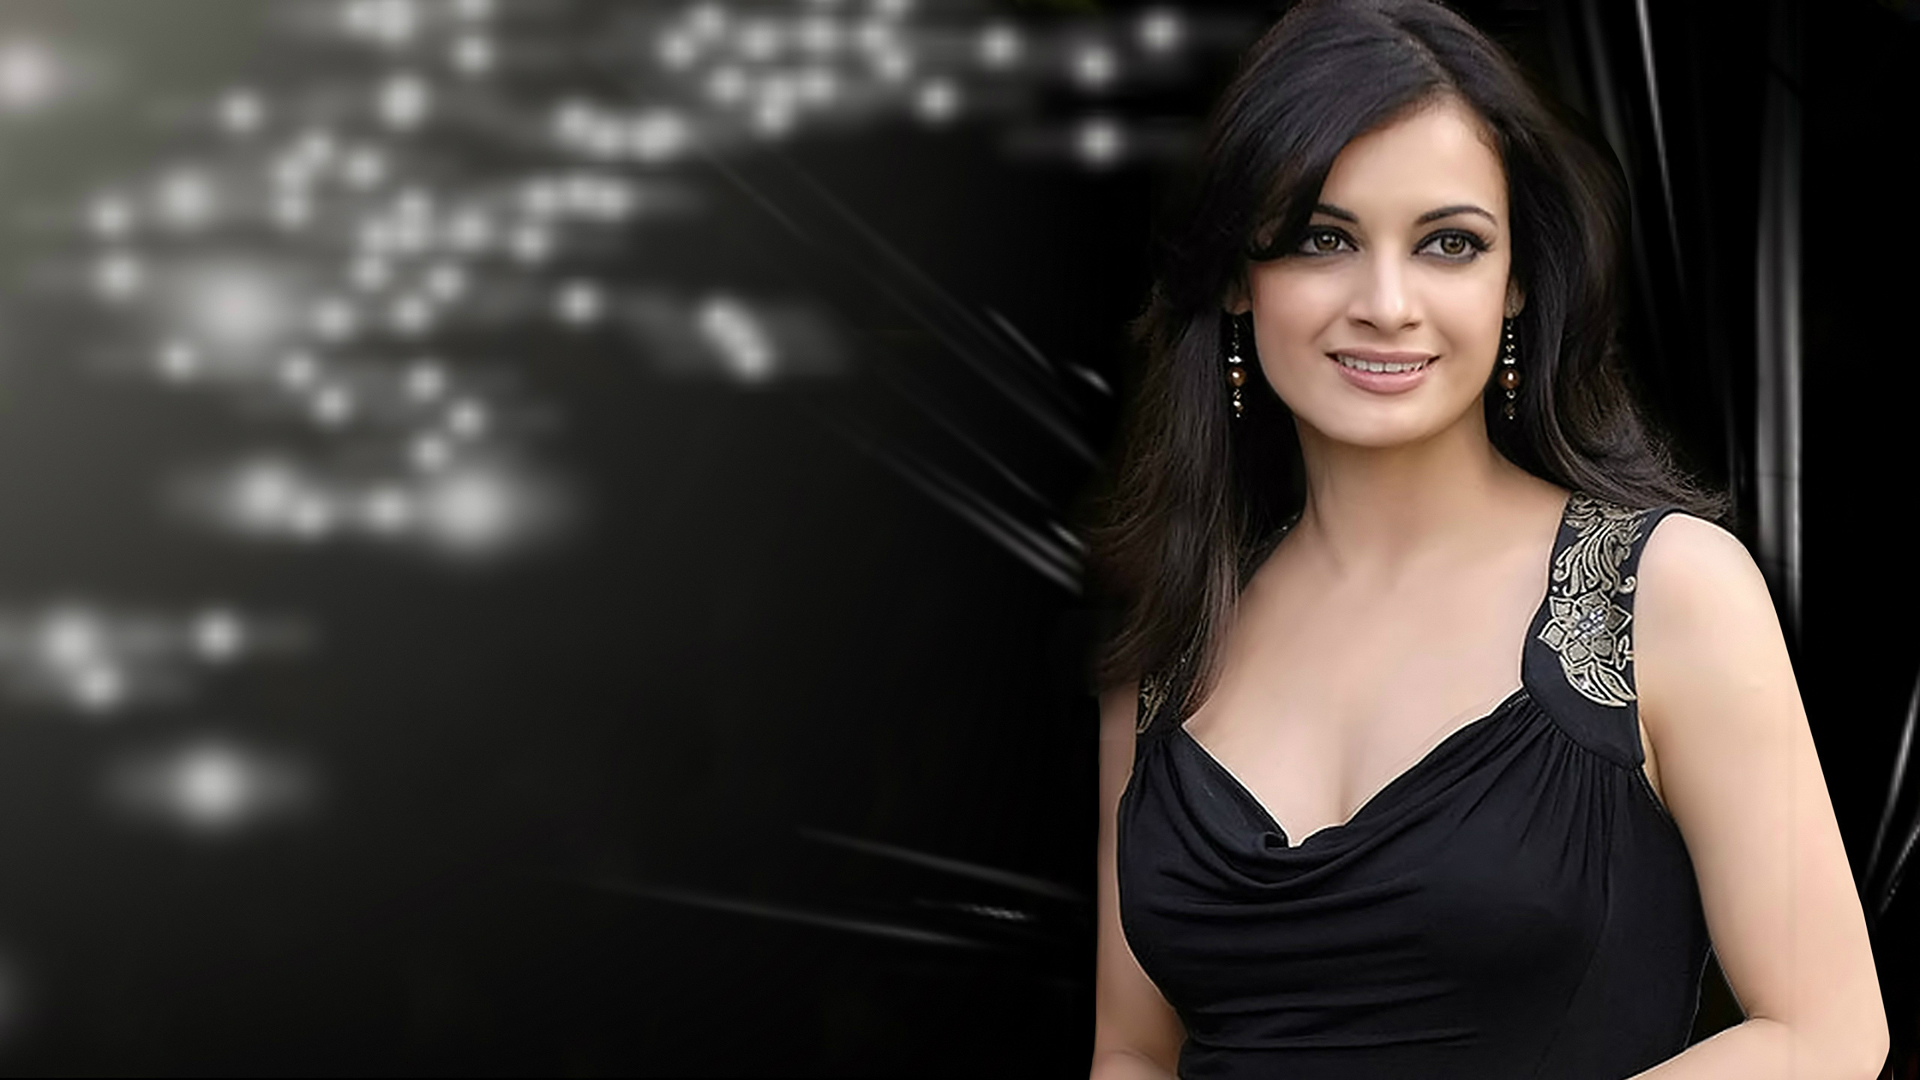 Download Bollywood Actress Hd Wallpapers 1080p Free: Dia Mirza Wallpapers Images Photos Pictures Backgrounds